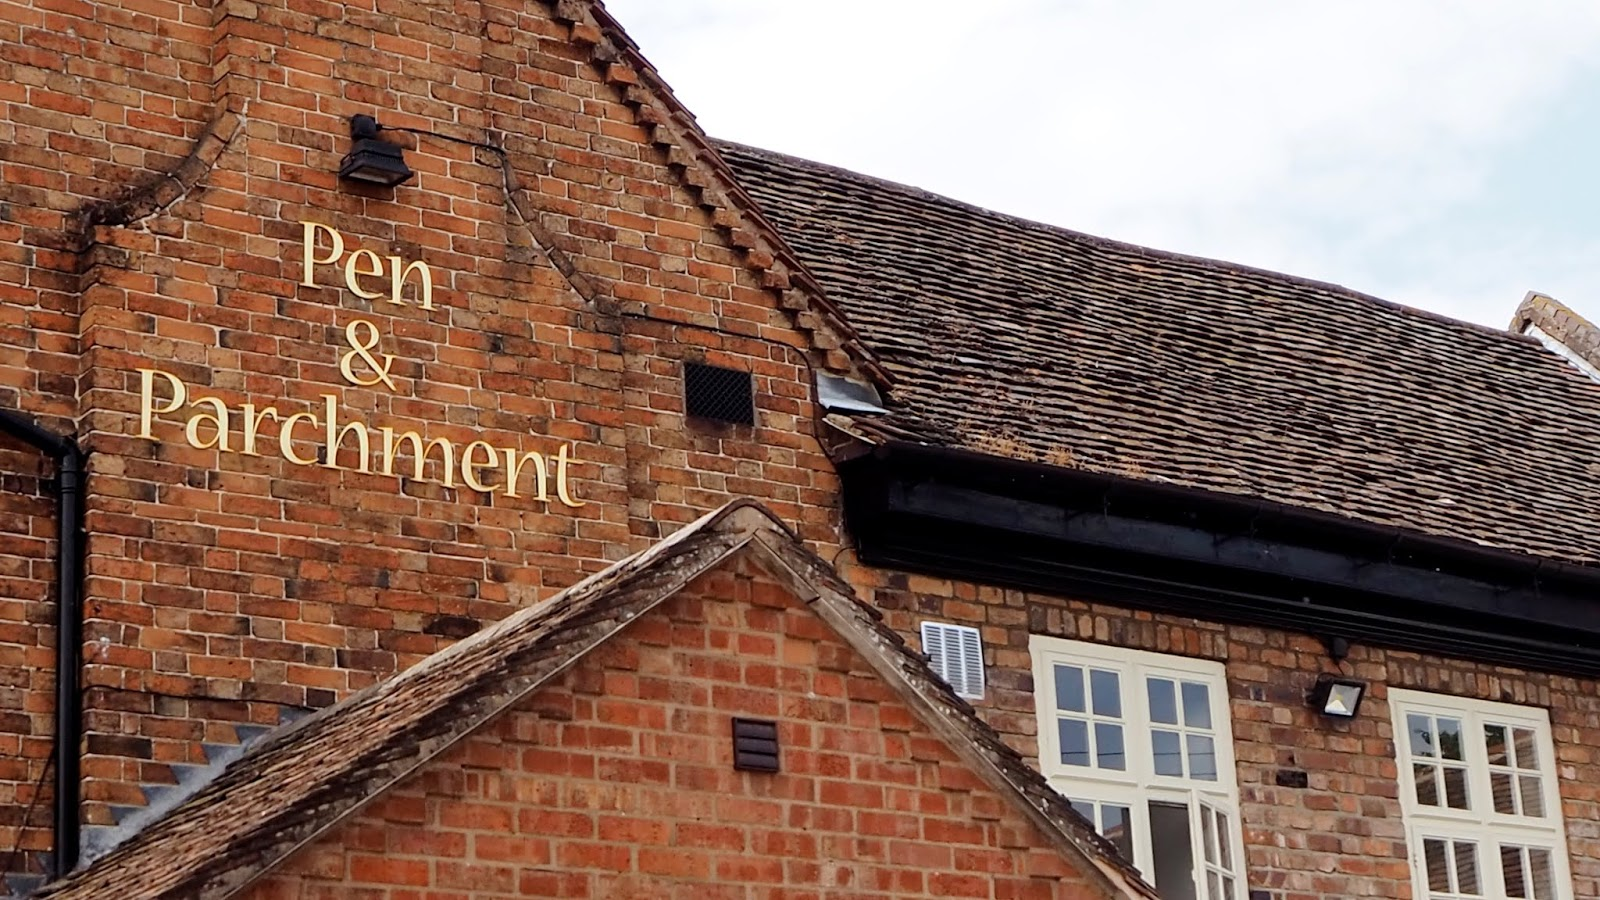 Pen & Parchment Inn and Pub in Stratford-Upon-Avon